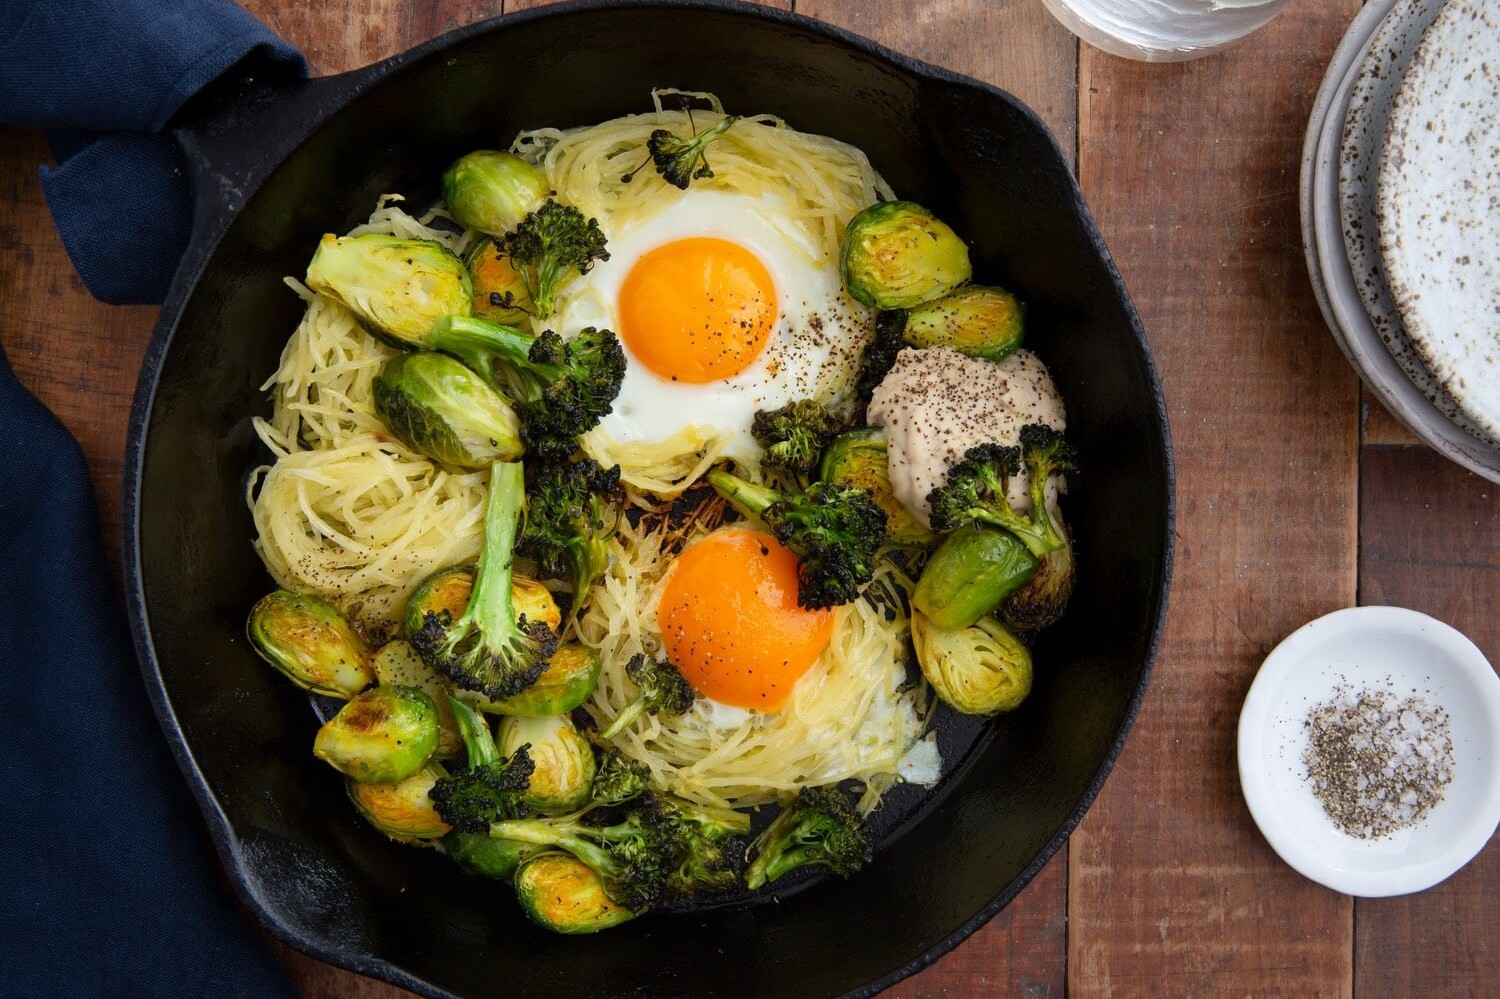 This healthy egg skillet is made with spaghetti squash, brussel sprouts, avocado oil, and organic eggs. | peteandgerrys.com